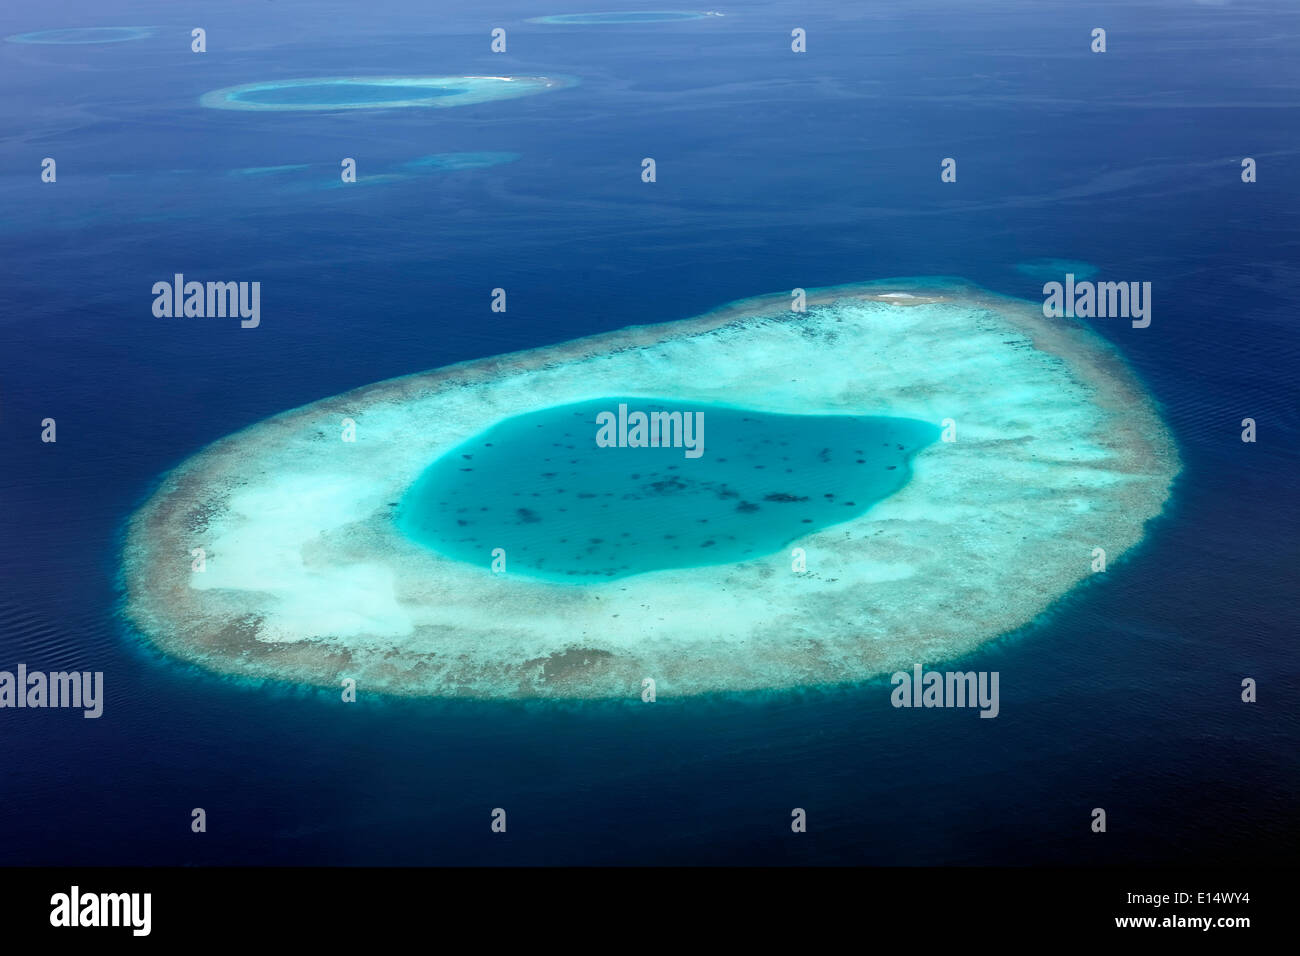 Aerial view, sunken island and coral reef, Indian Ocean, Maldives - Stock Image